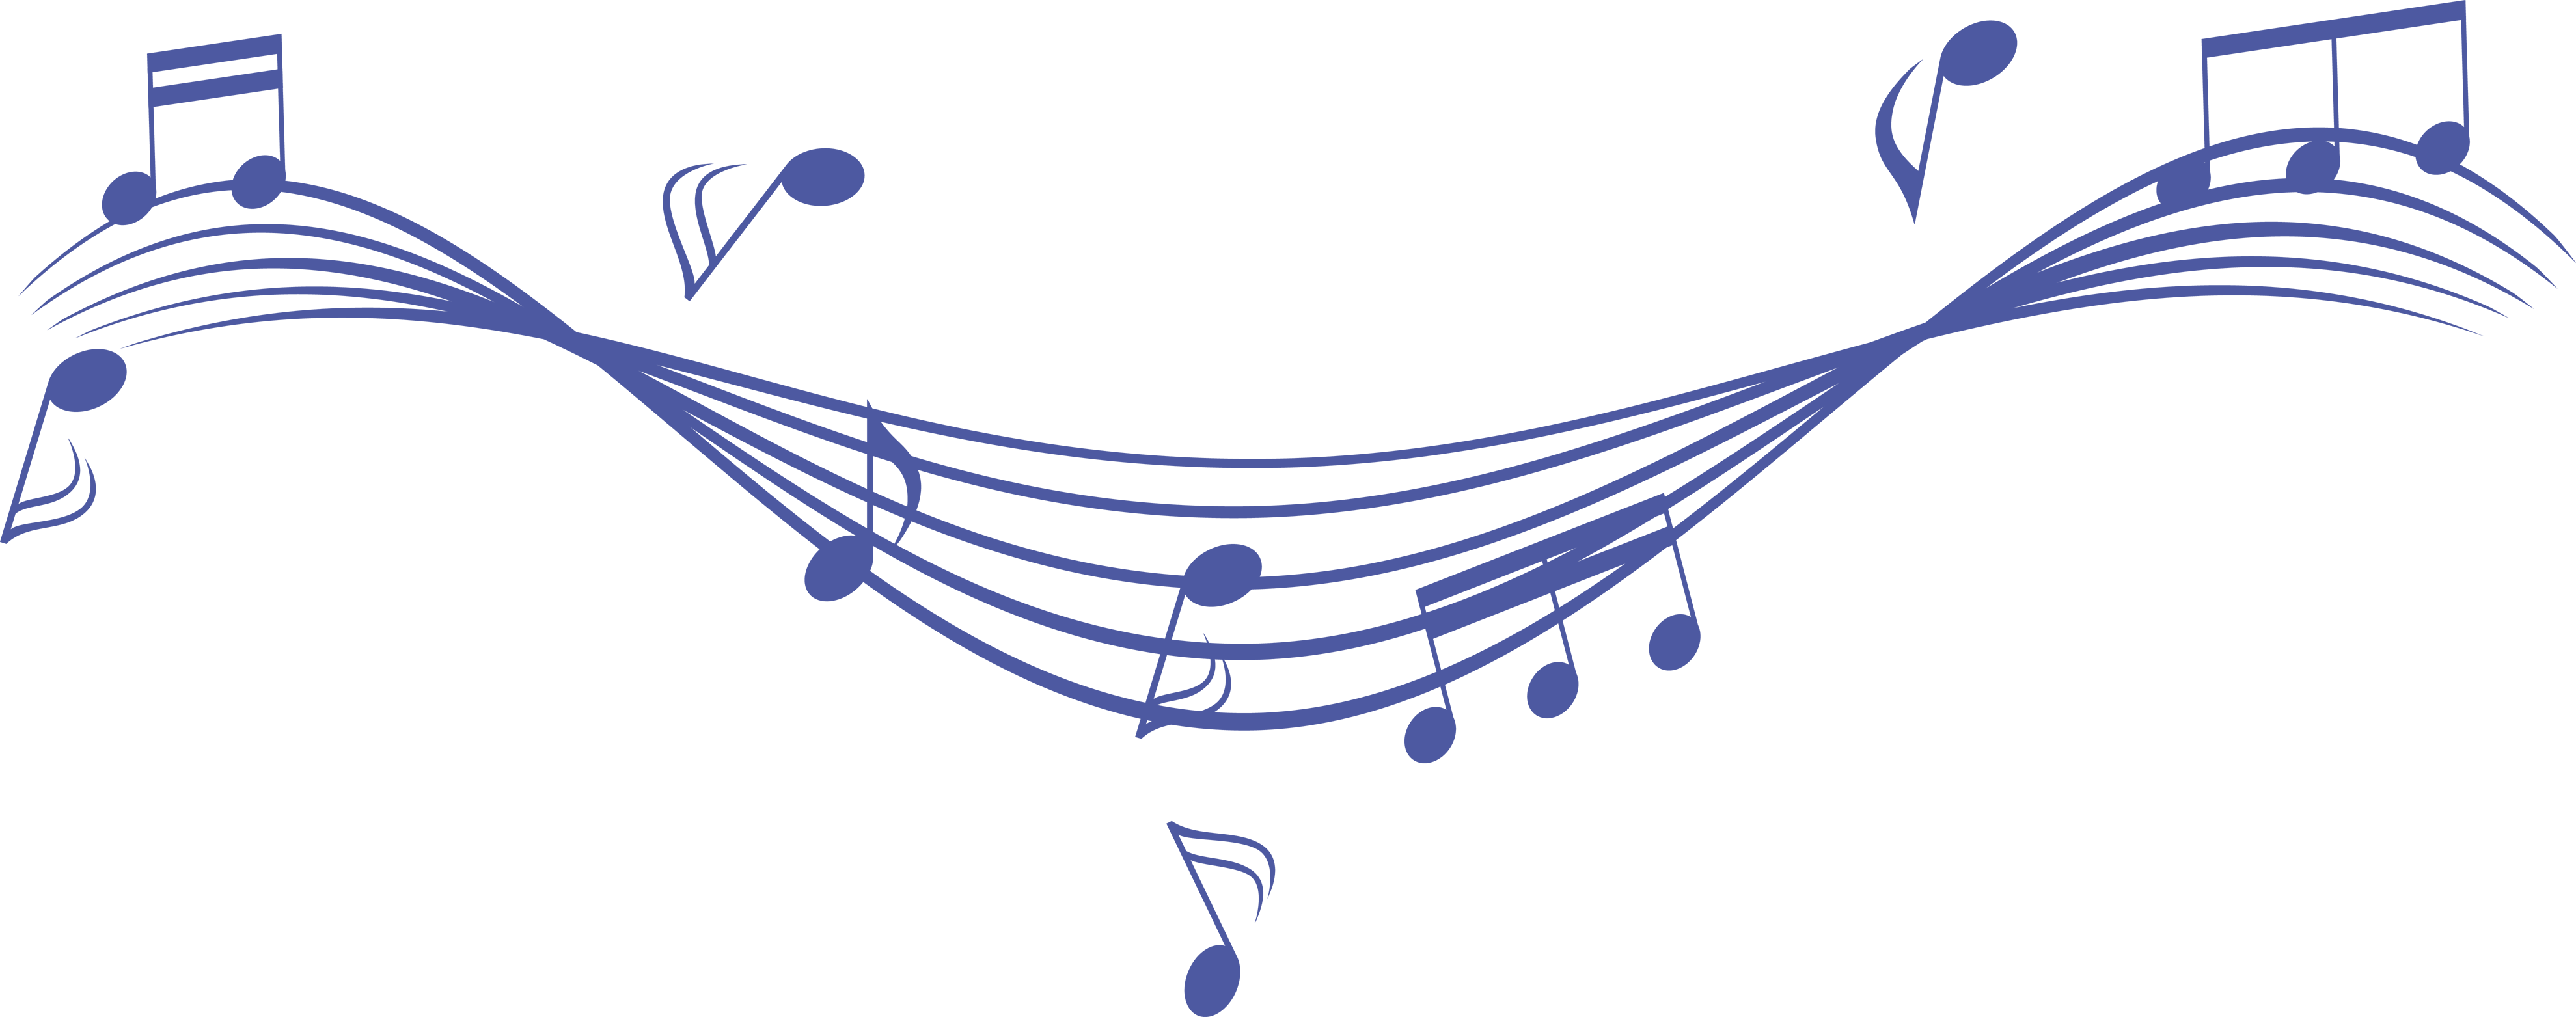 music notes png  psd  vector  icon transparent images free literature clipart free literature clip art